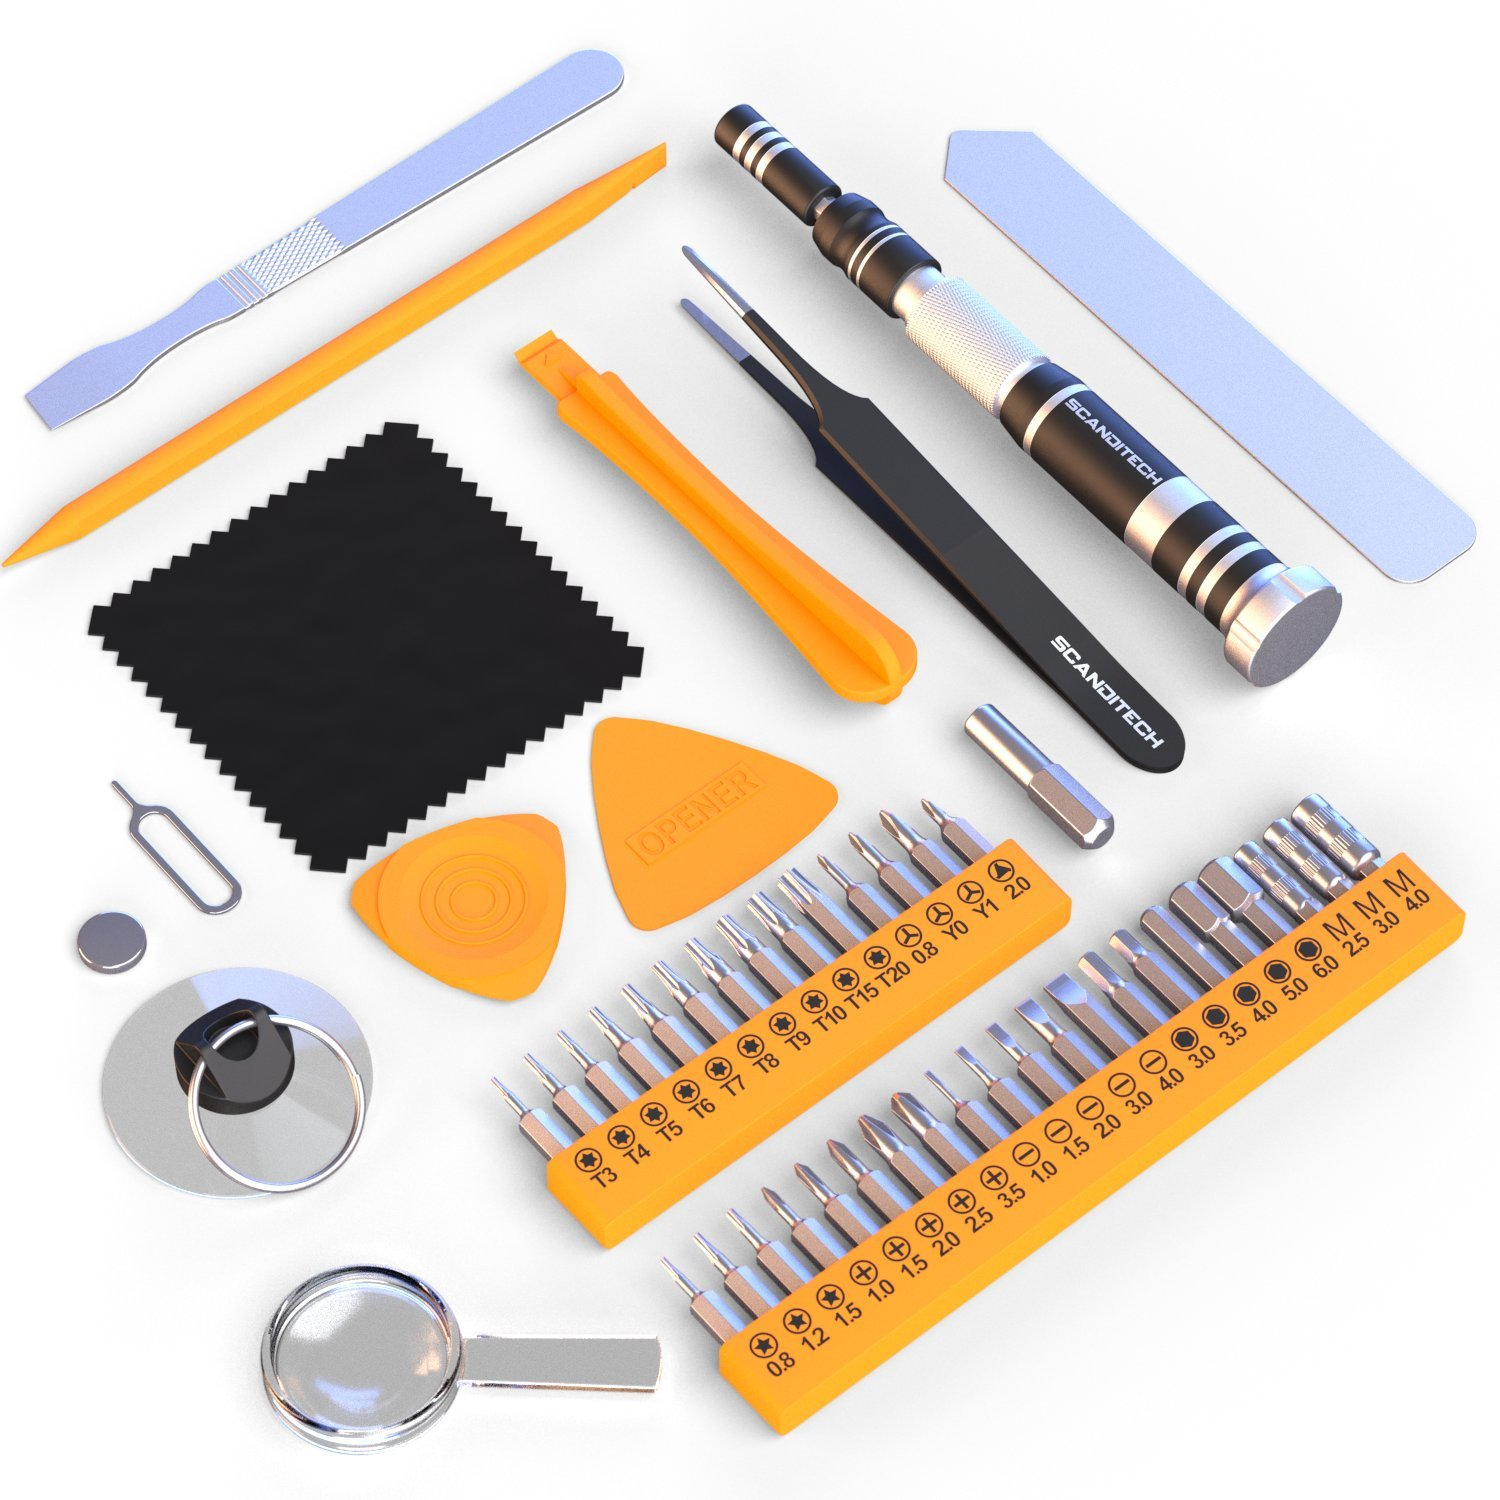 Tool Kit Small Precision Screwdriver Tools Set For Home Electronics Iphone Computers Macbook Pc Laptop Phone Ps4 Household Repair Magnetic Bits Basic Case Amazon Com